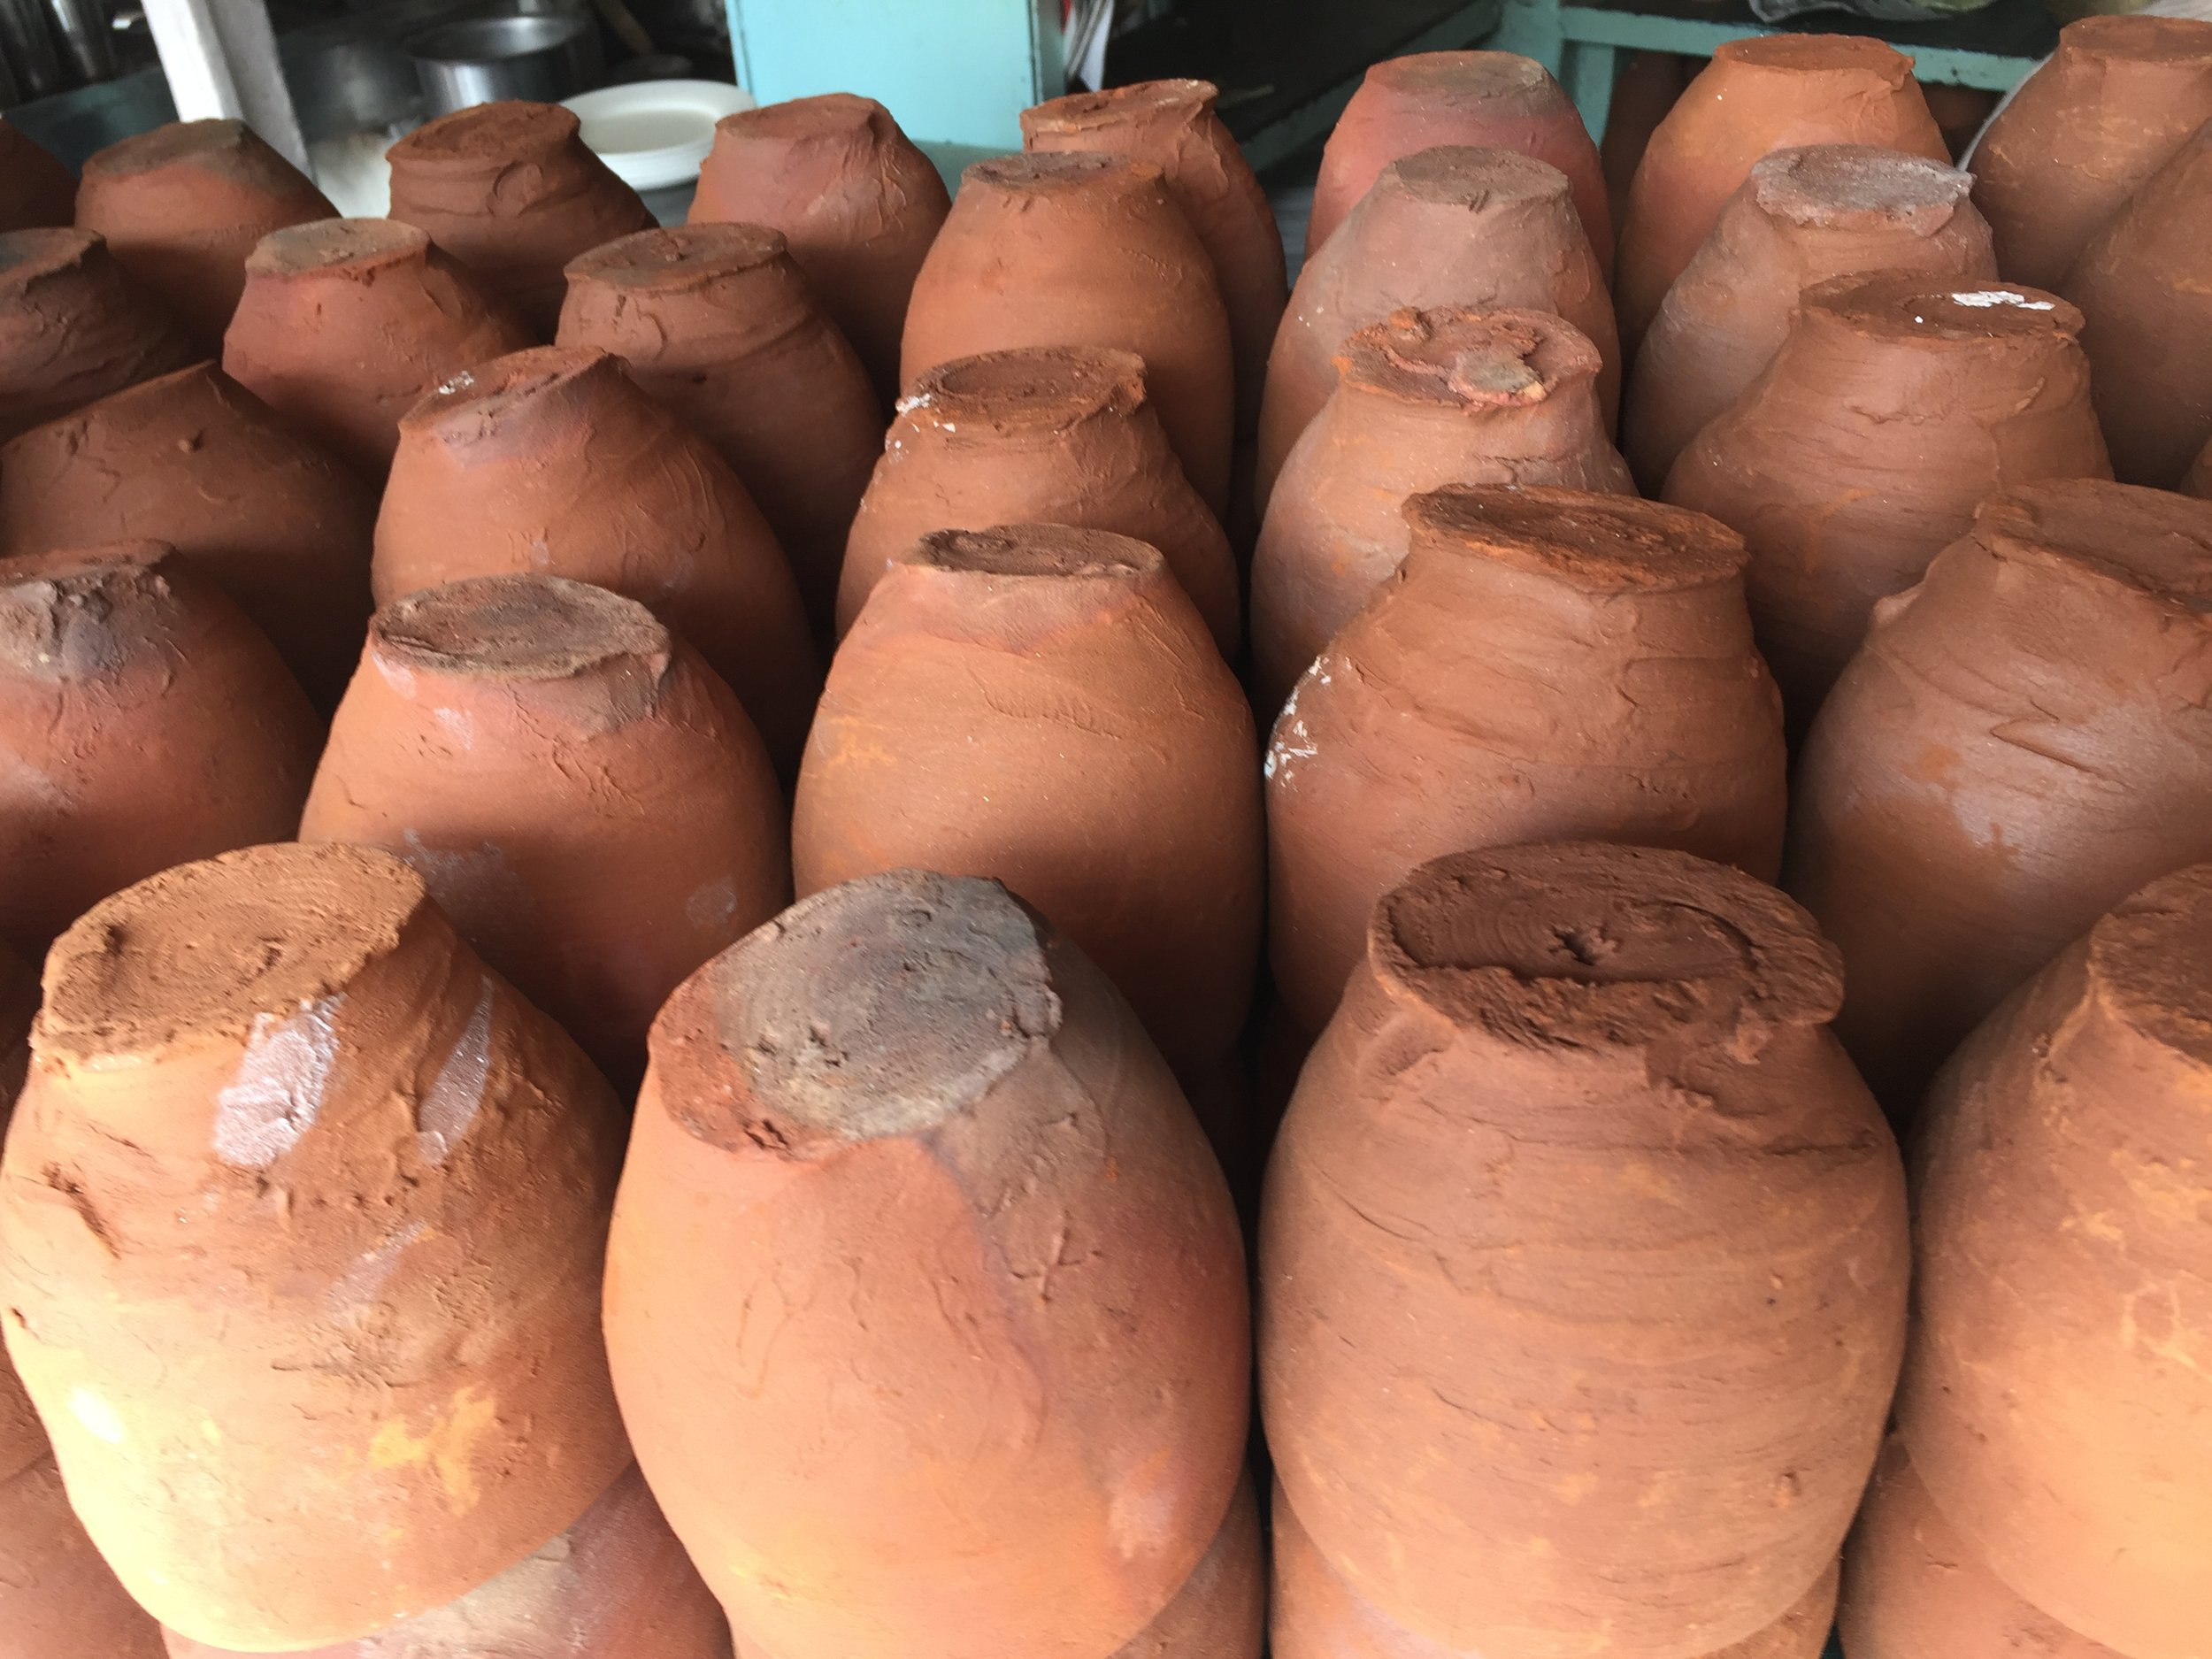 Clay pots for serving Chole Chawal in Chandni Chowk.